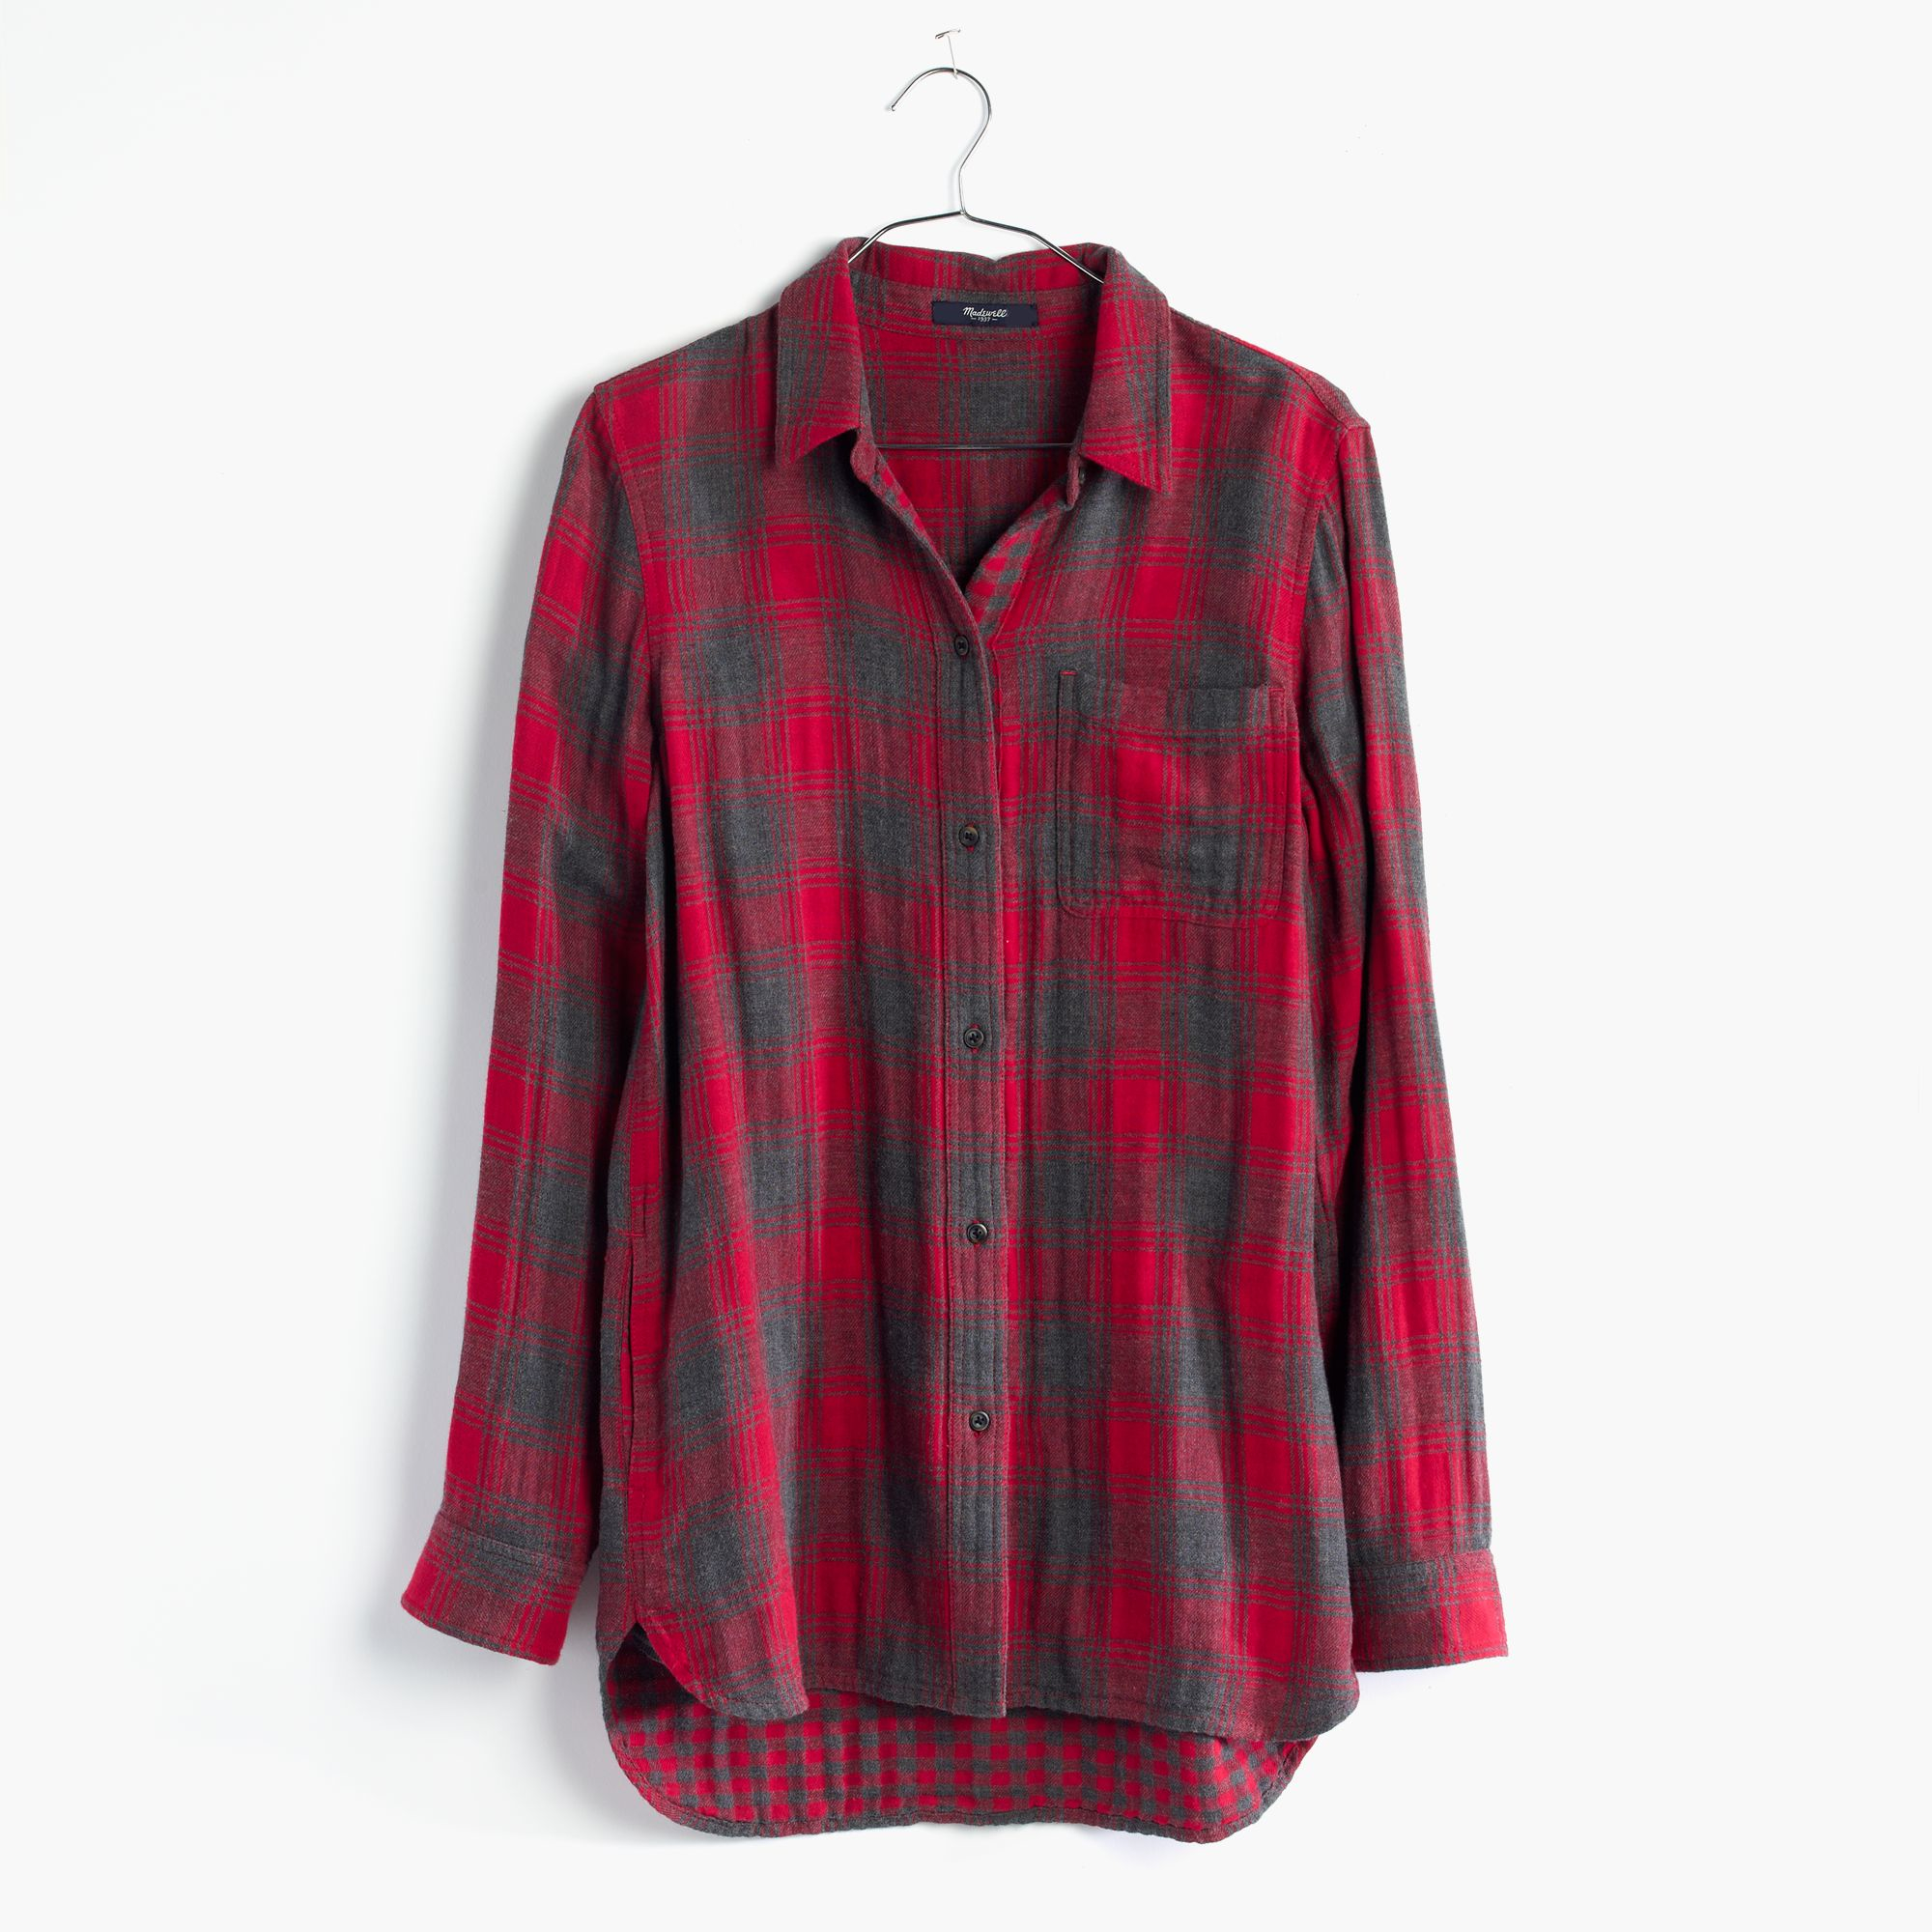 Madewell clothing store